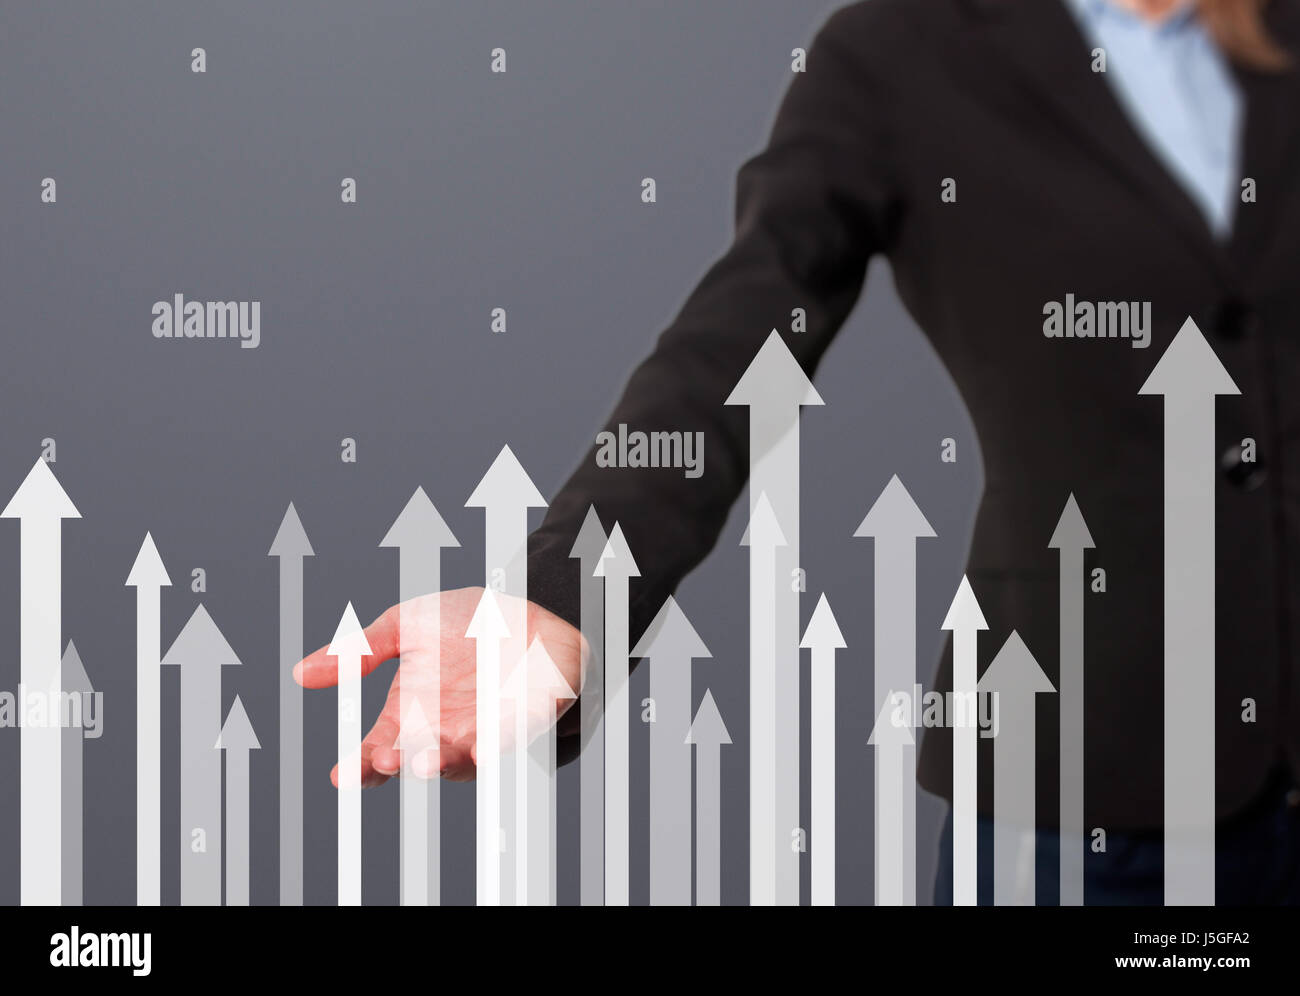 Businesswoman with financial symbols coming. Business, growth, investment concept. Women hand showing arrows. Isolated - Stock Image